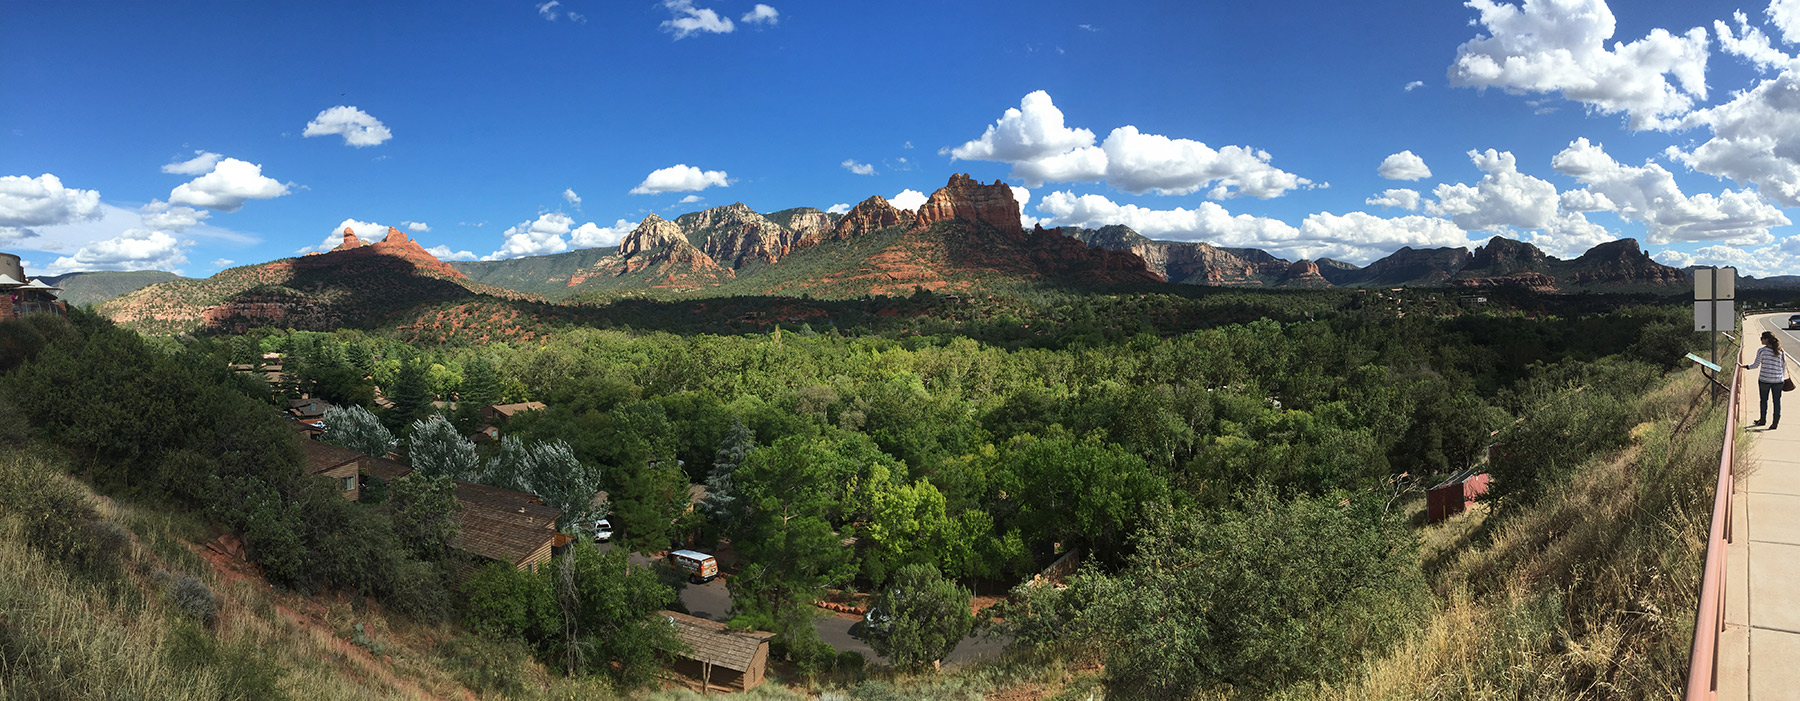 The Great American Road Trip | Sedona